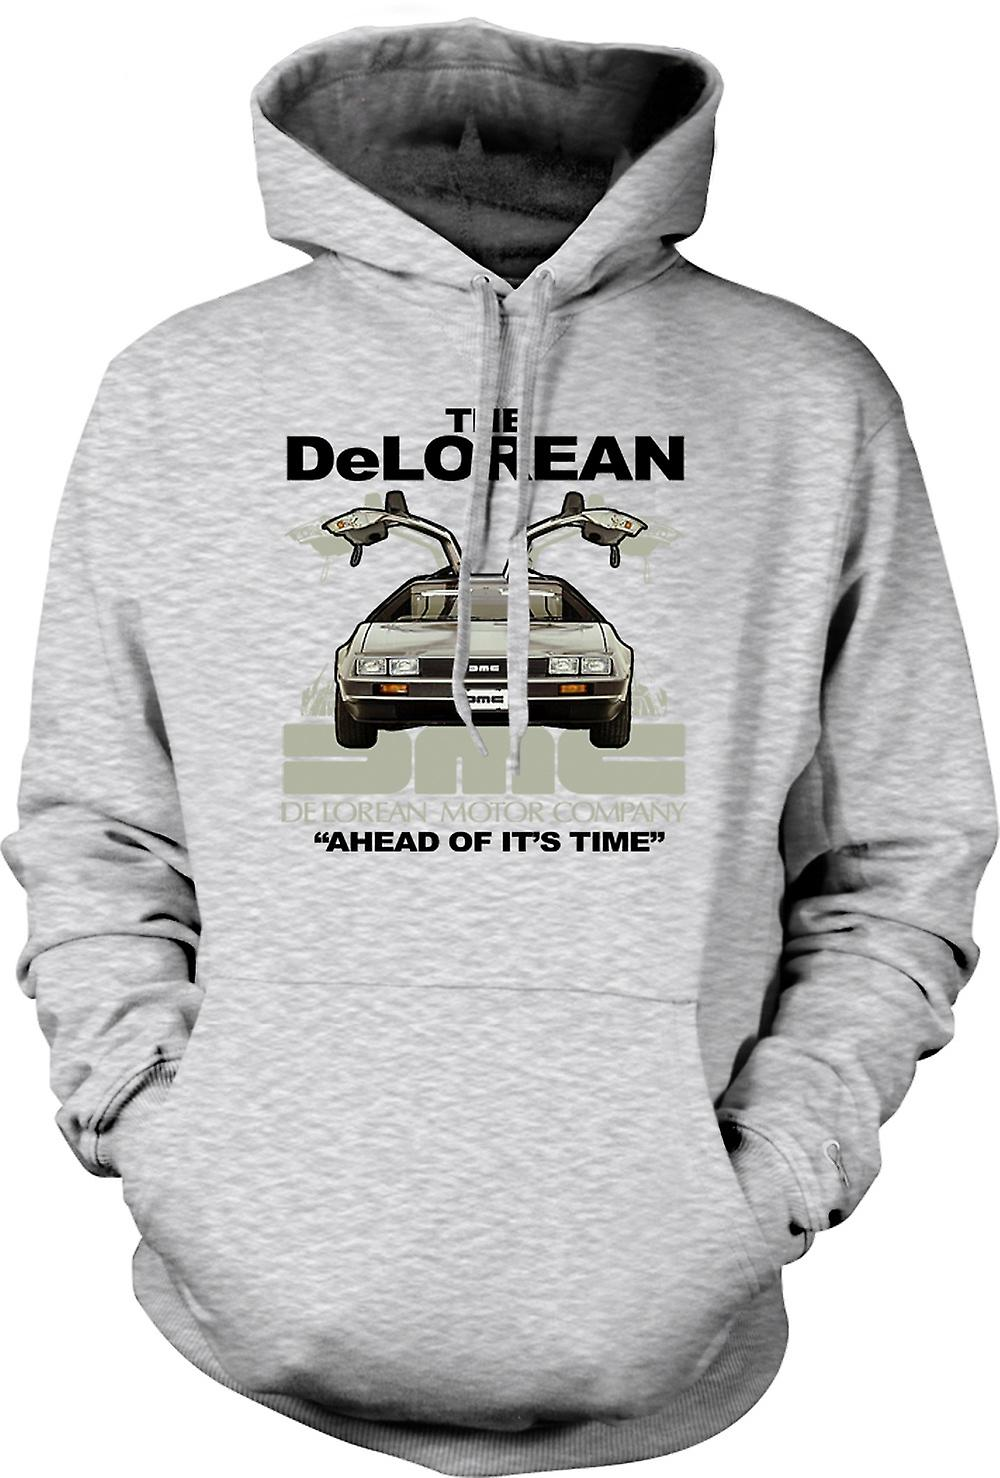 Mens Hoodie - DeLorean - Ahead Of Its Time